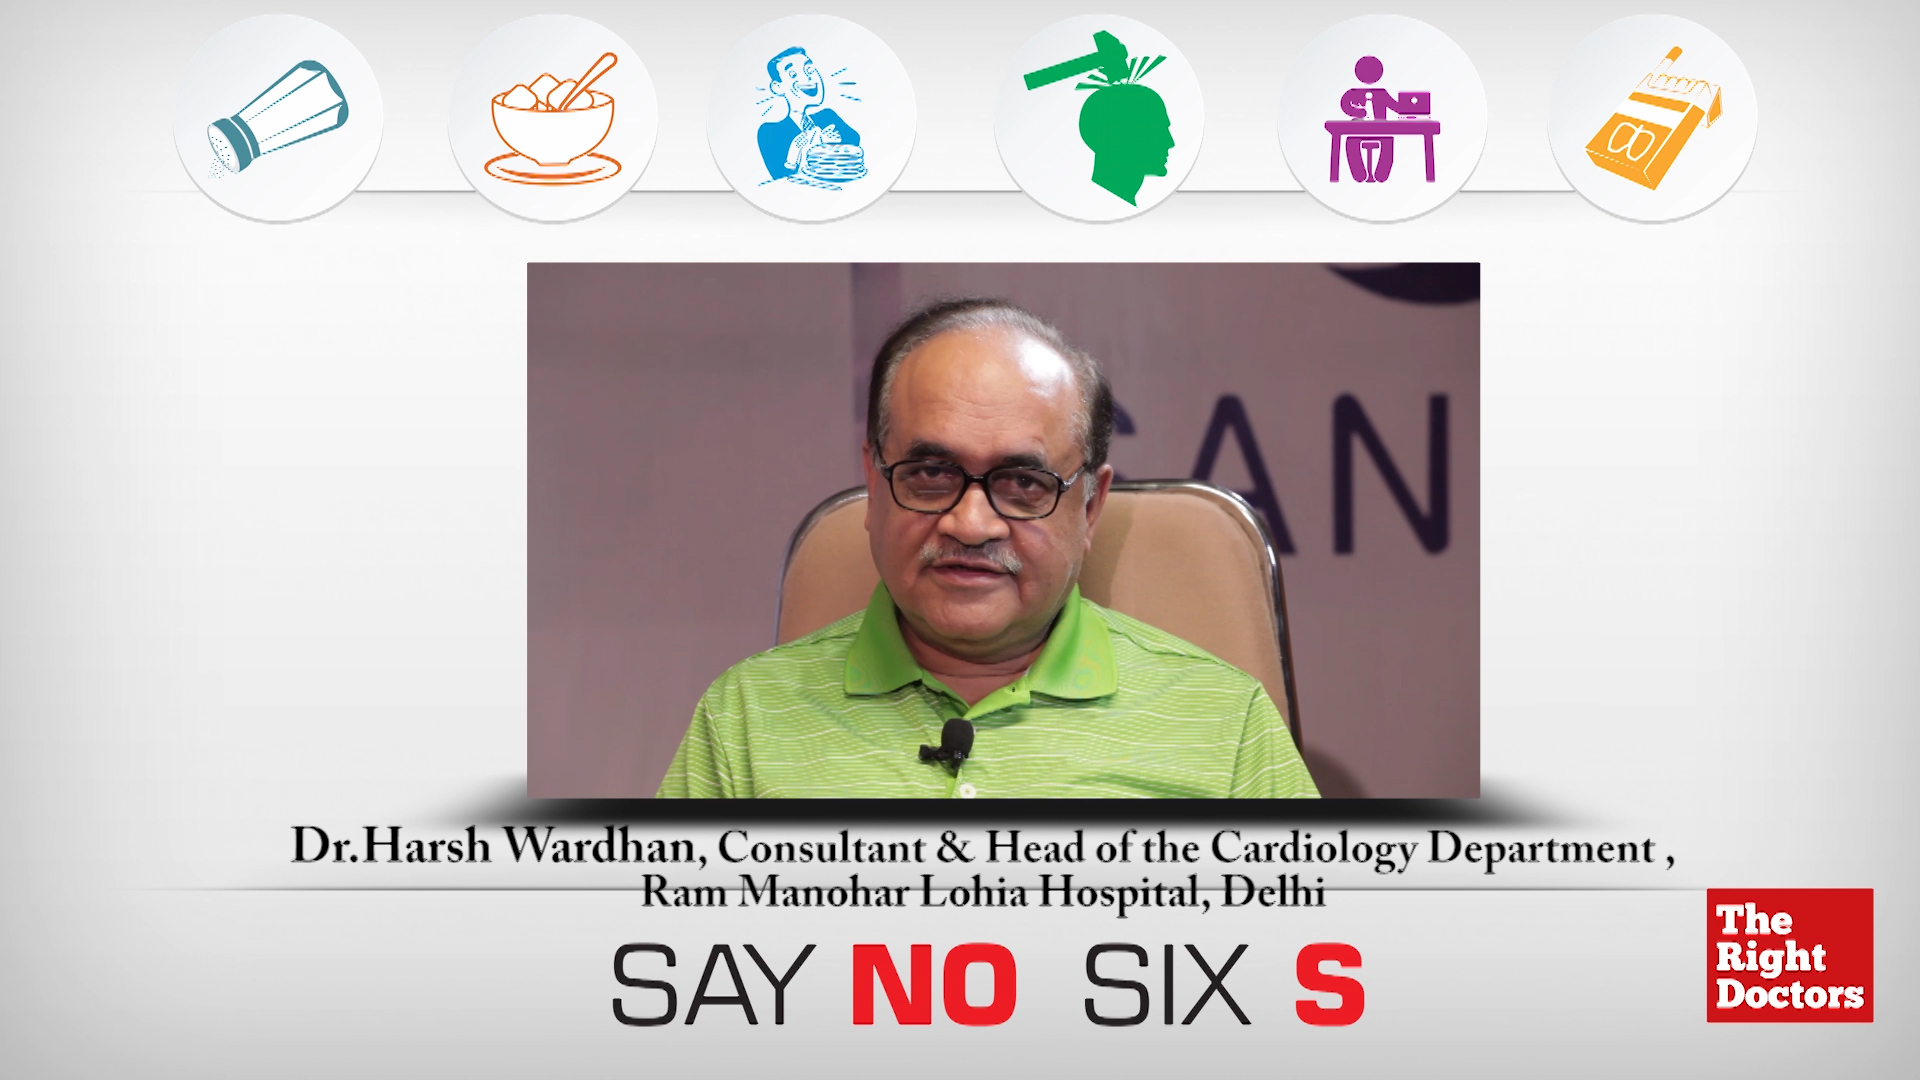 Say No to Six S: A CardiacPrevent2015 Campaign